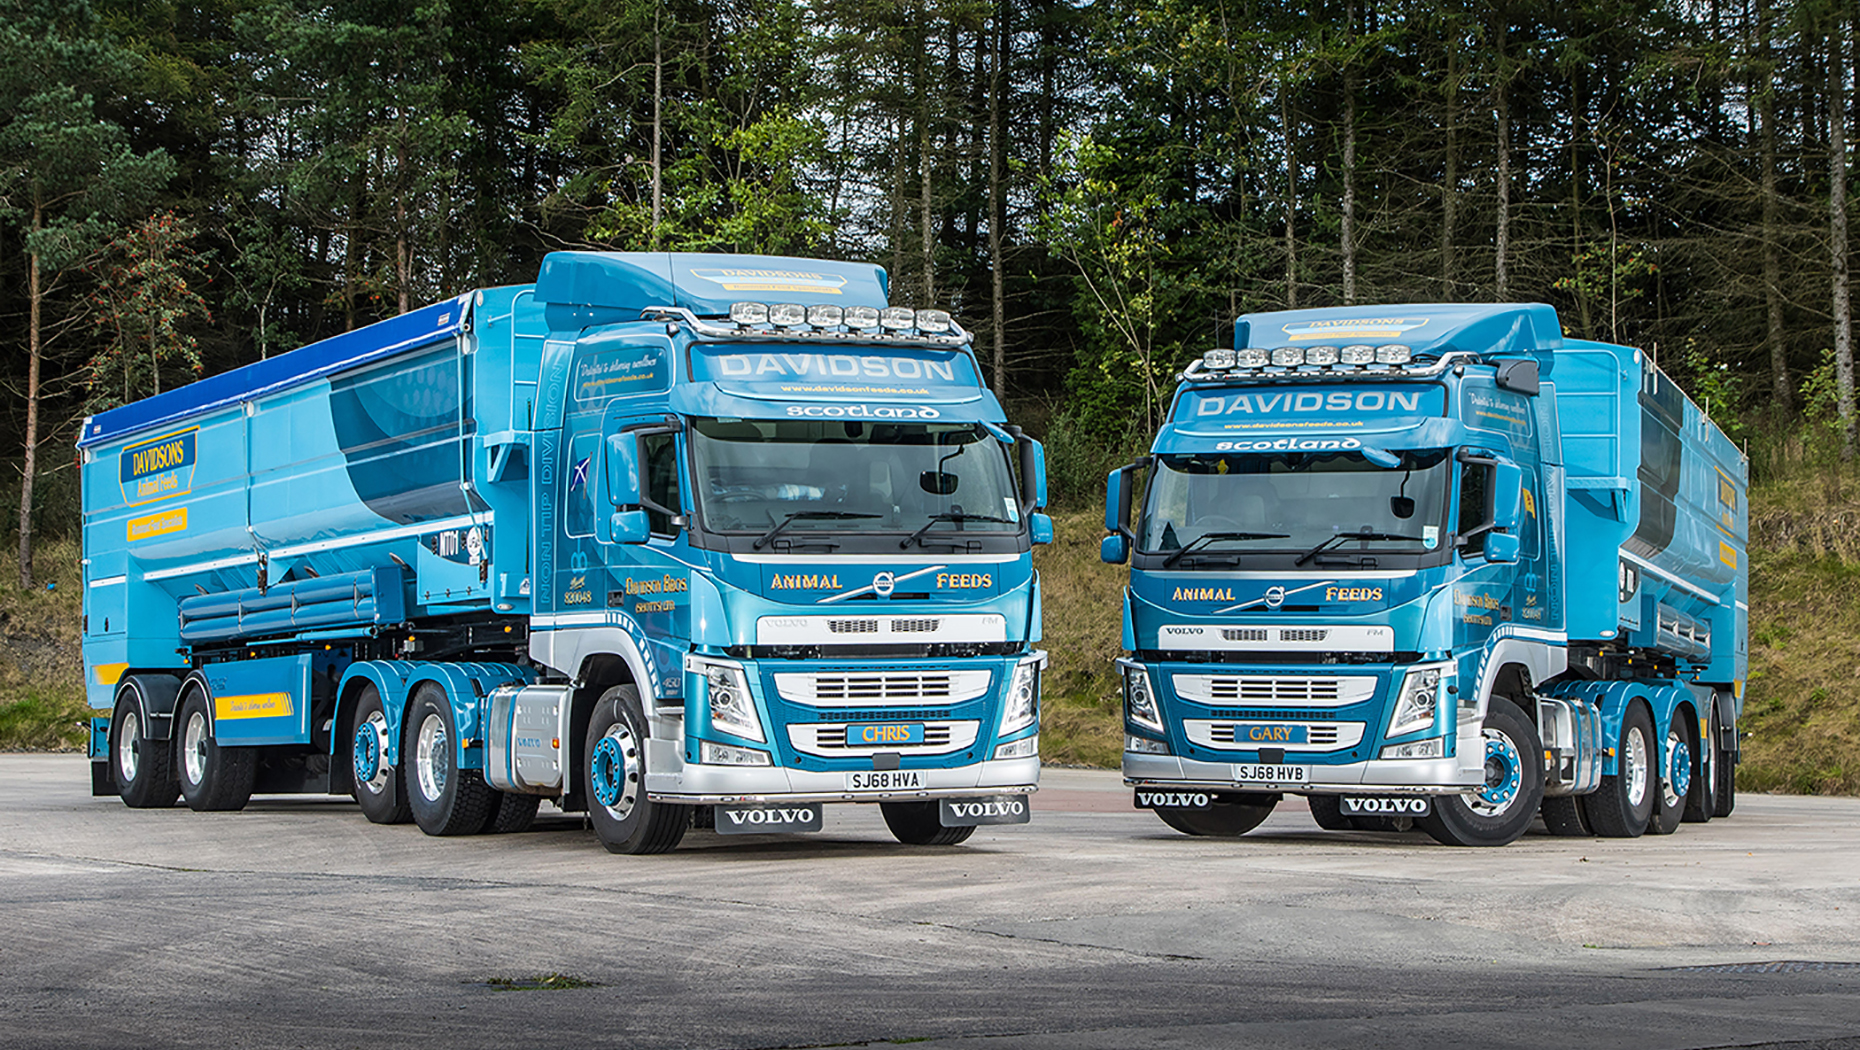 Two new Volvo FM tag axle tractor units prove the right combination at Davidsons Animal Feeds